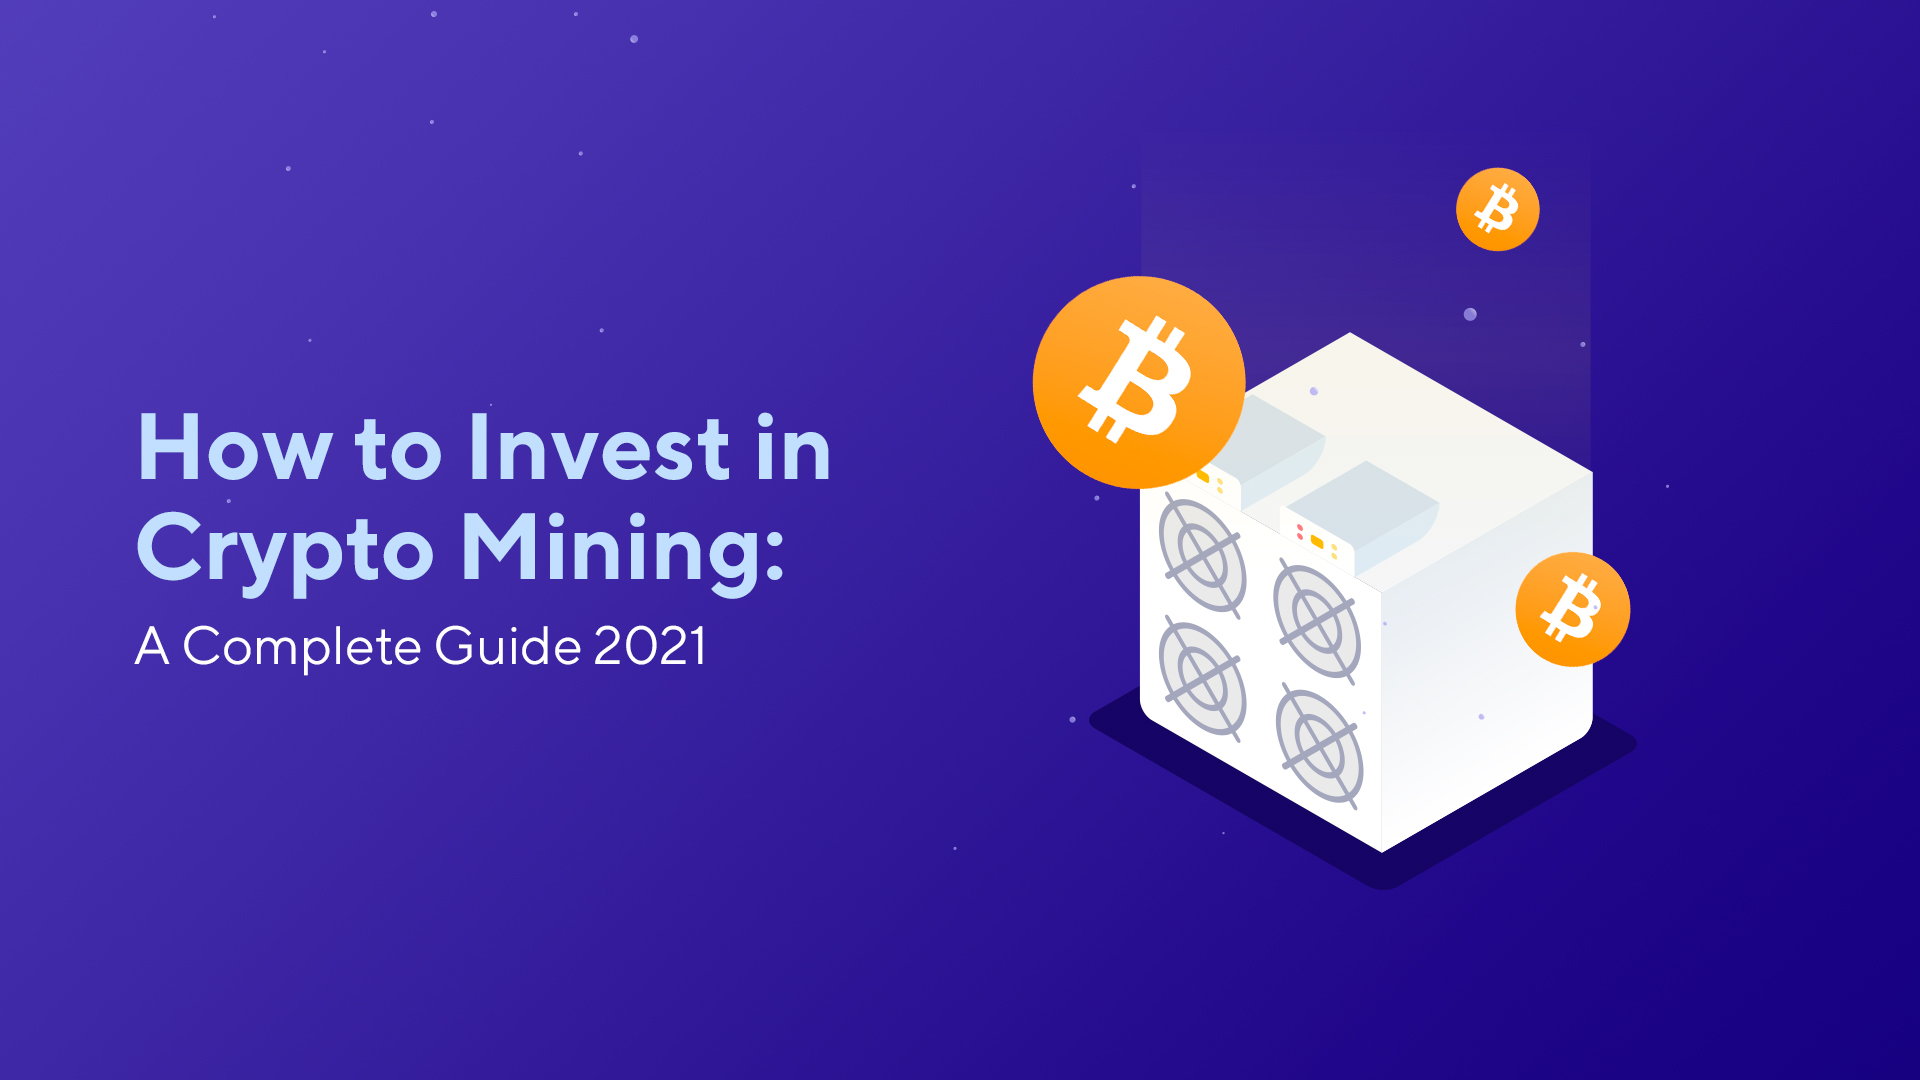 How to Invest in Crypto Mining: A Complete Guide 2021